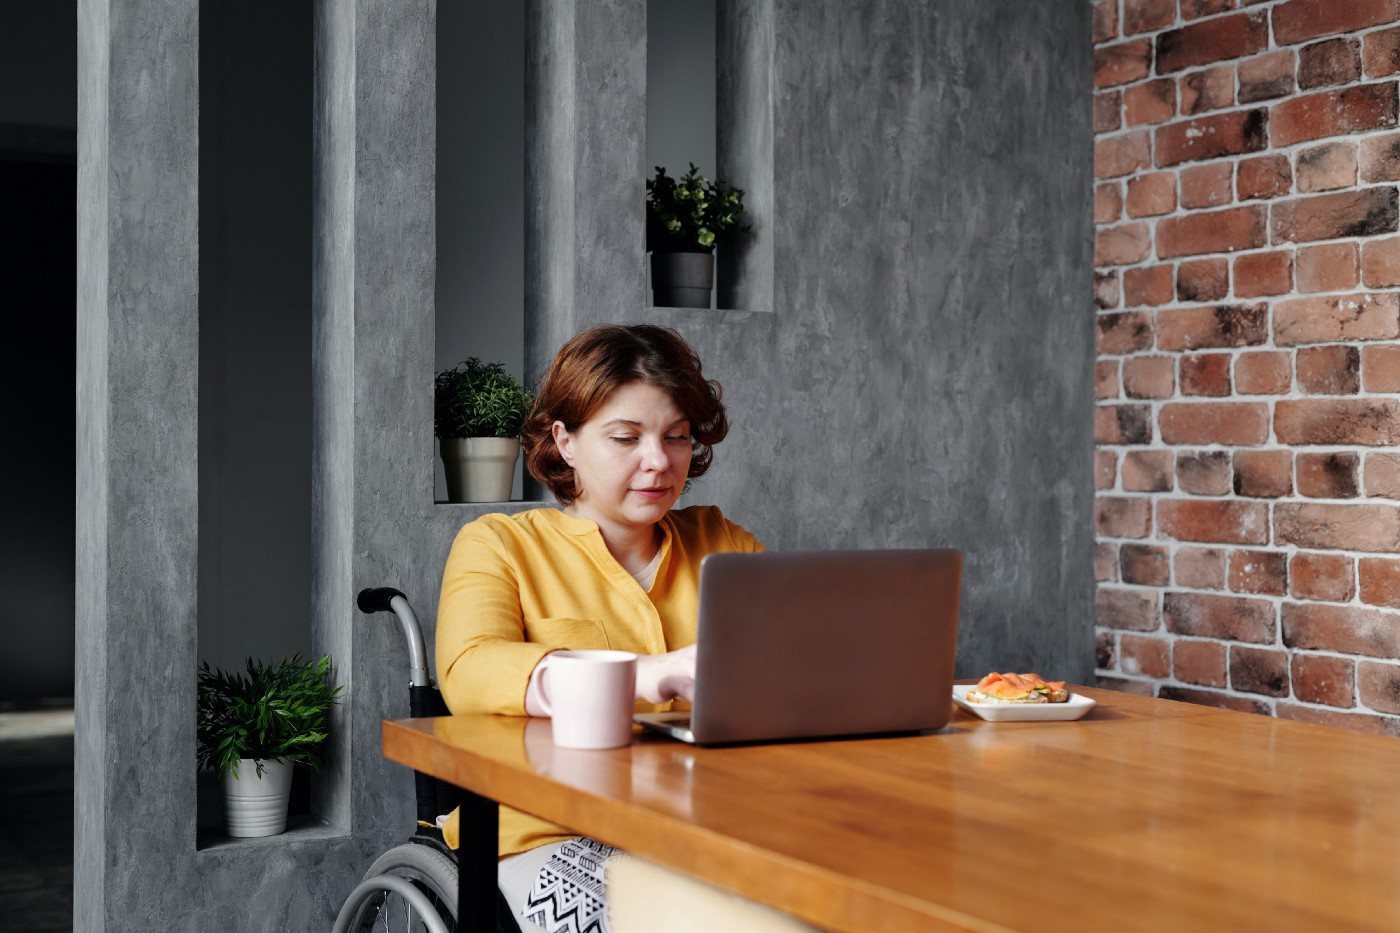 A woman sitting at her kitchen table, eating breakfast while working on her laptop